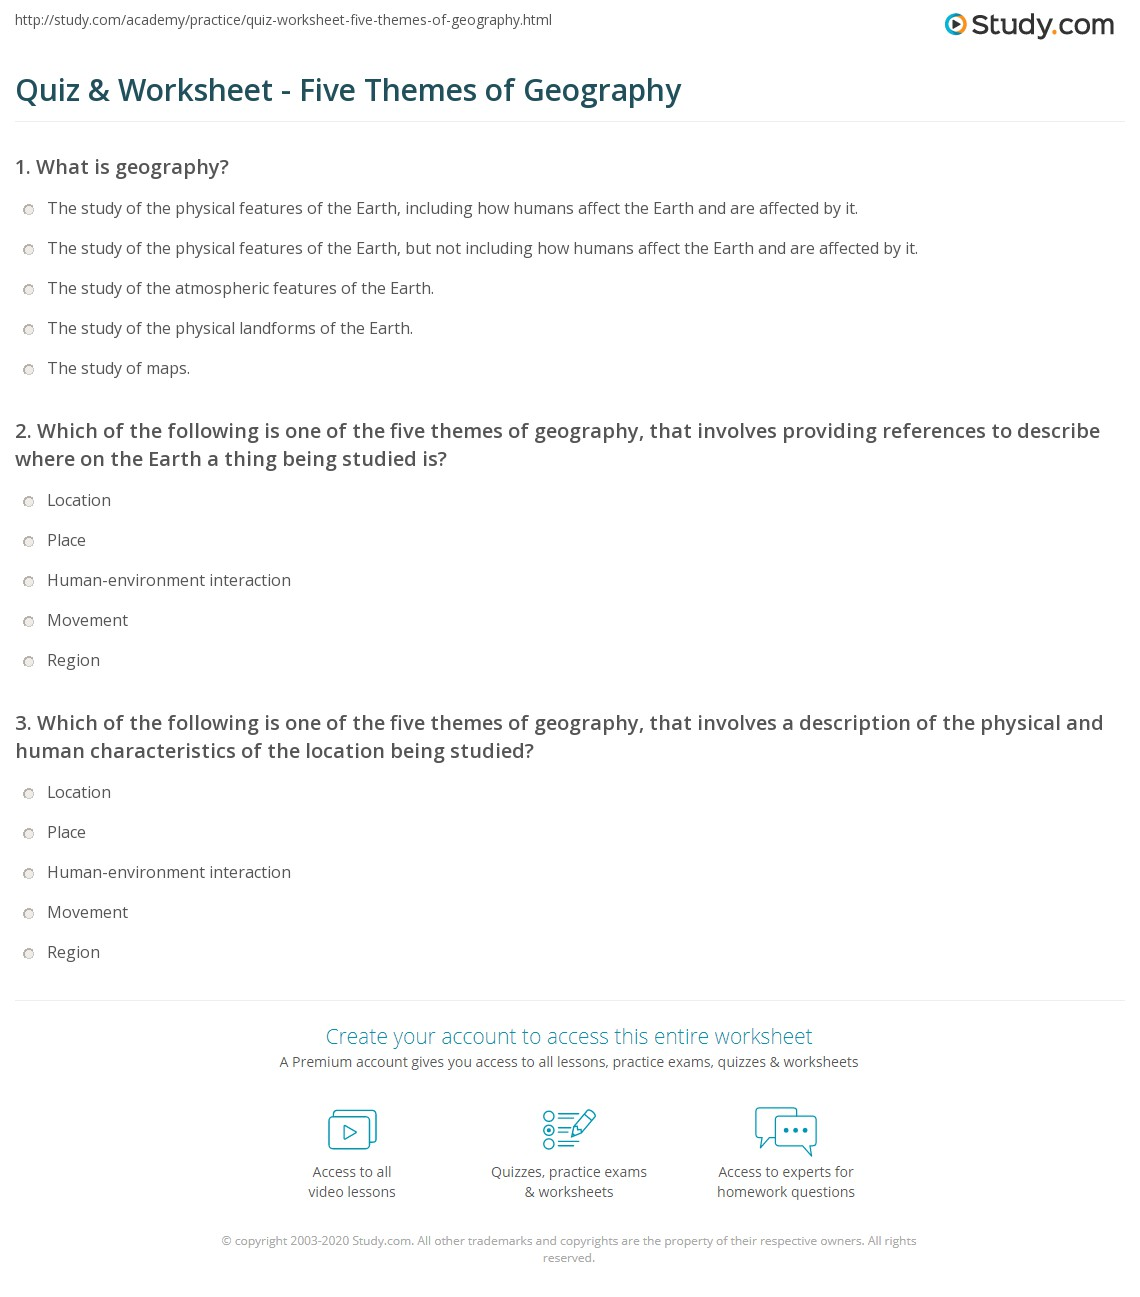 Worksheets Five Themes Of Geography Worksheet quiz worksheet five themes of geography study com print what are the worksheet